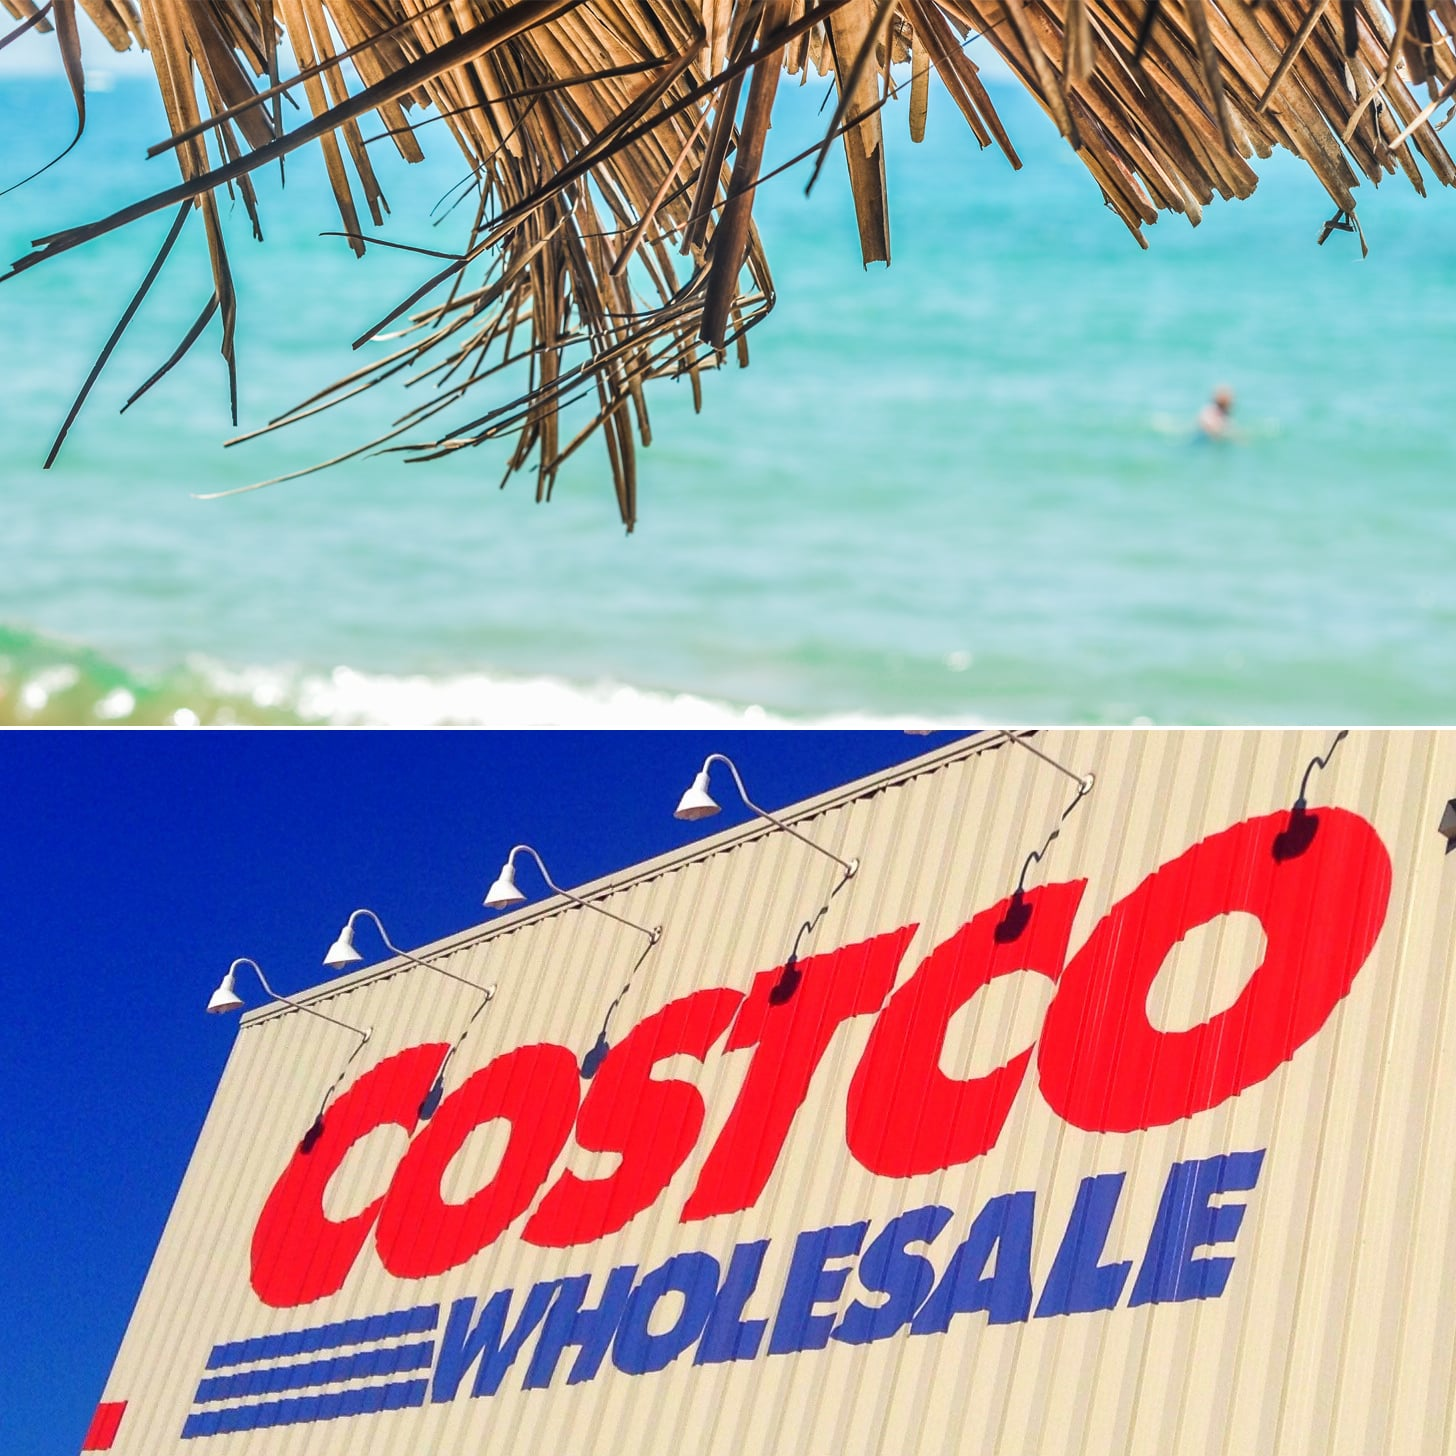 Costcos Travel Site  POPSUGAR Smart Living